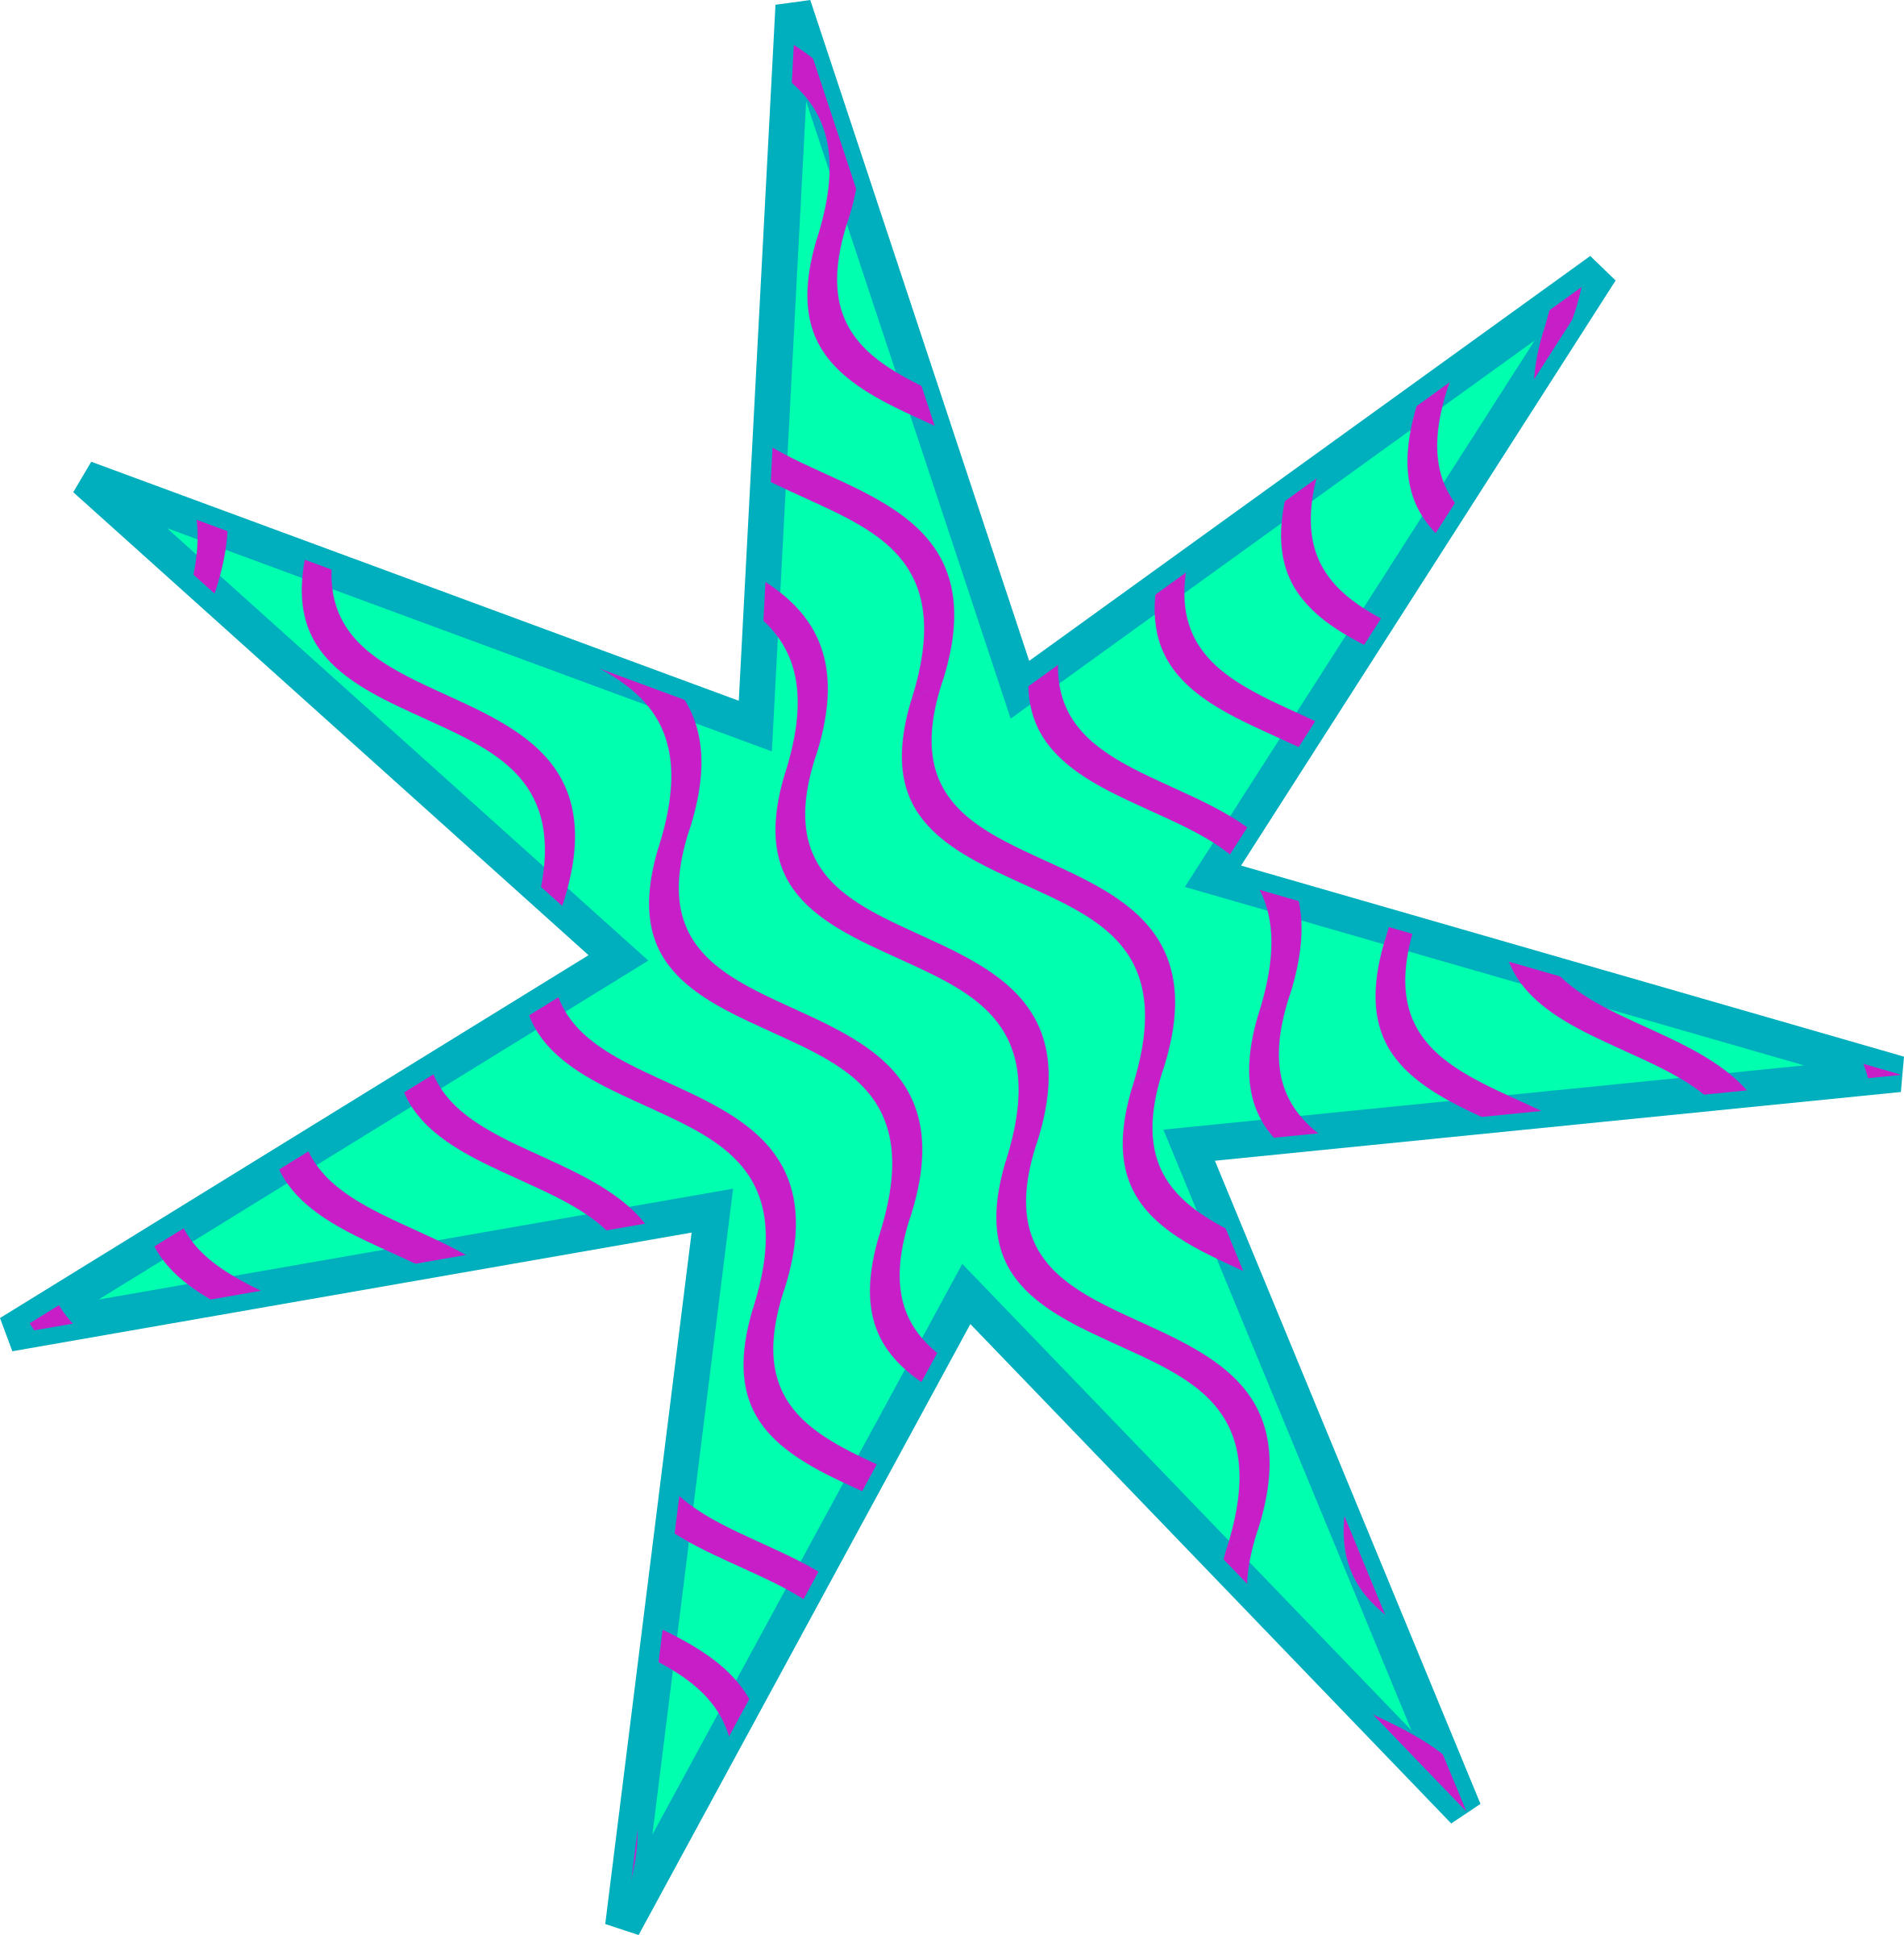 Teal star clipart clipart royalty free library Clipart - Crazy Star clipart royalty free library